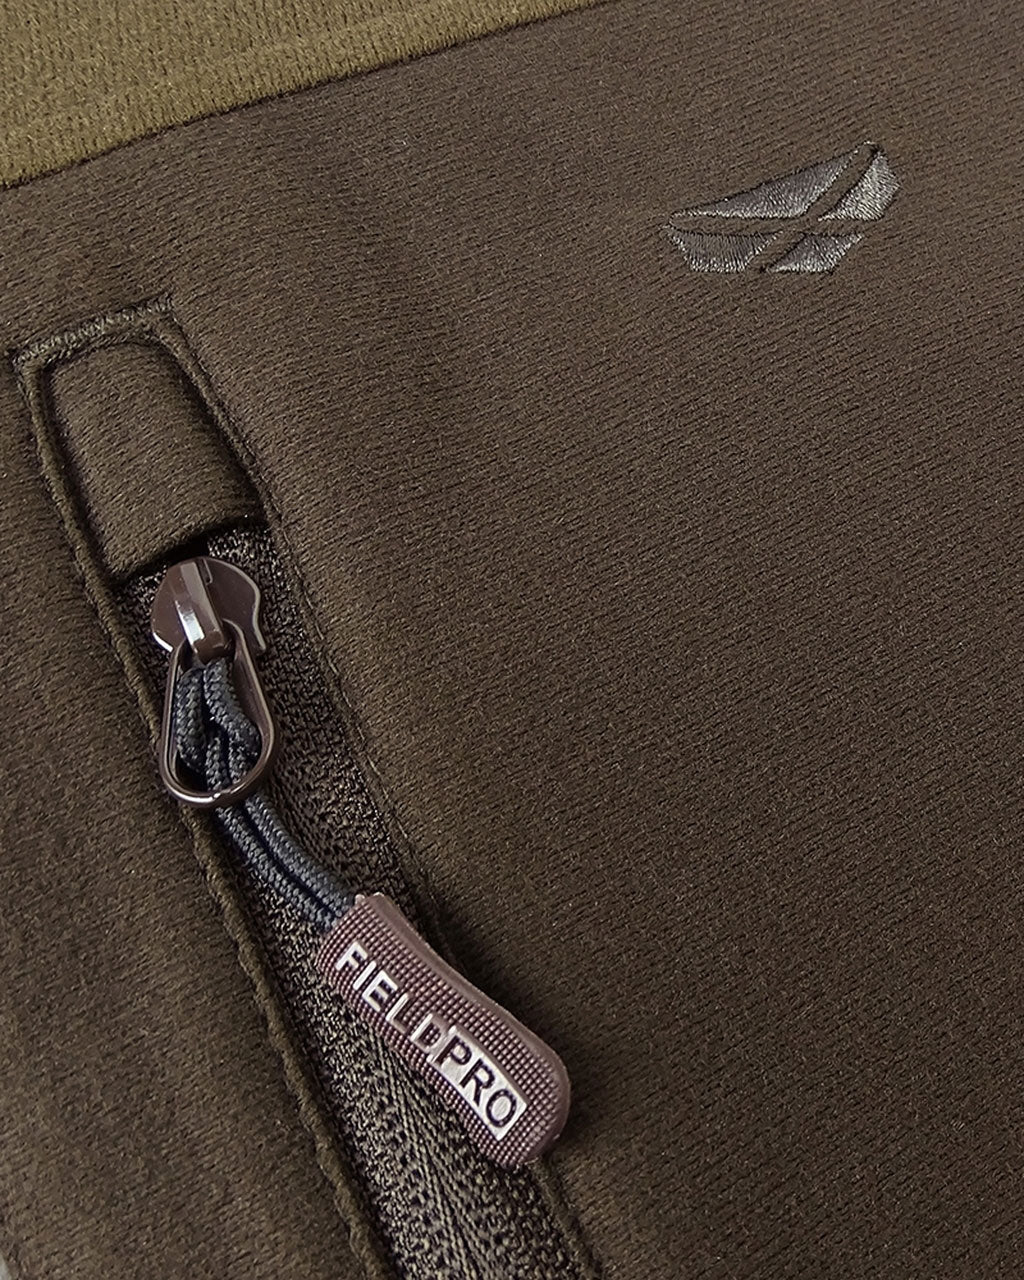 zip pocket detail